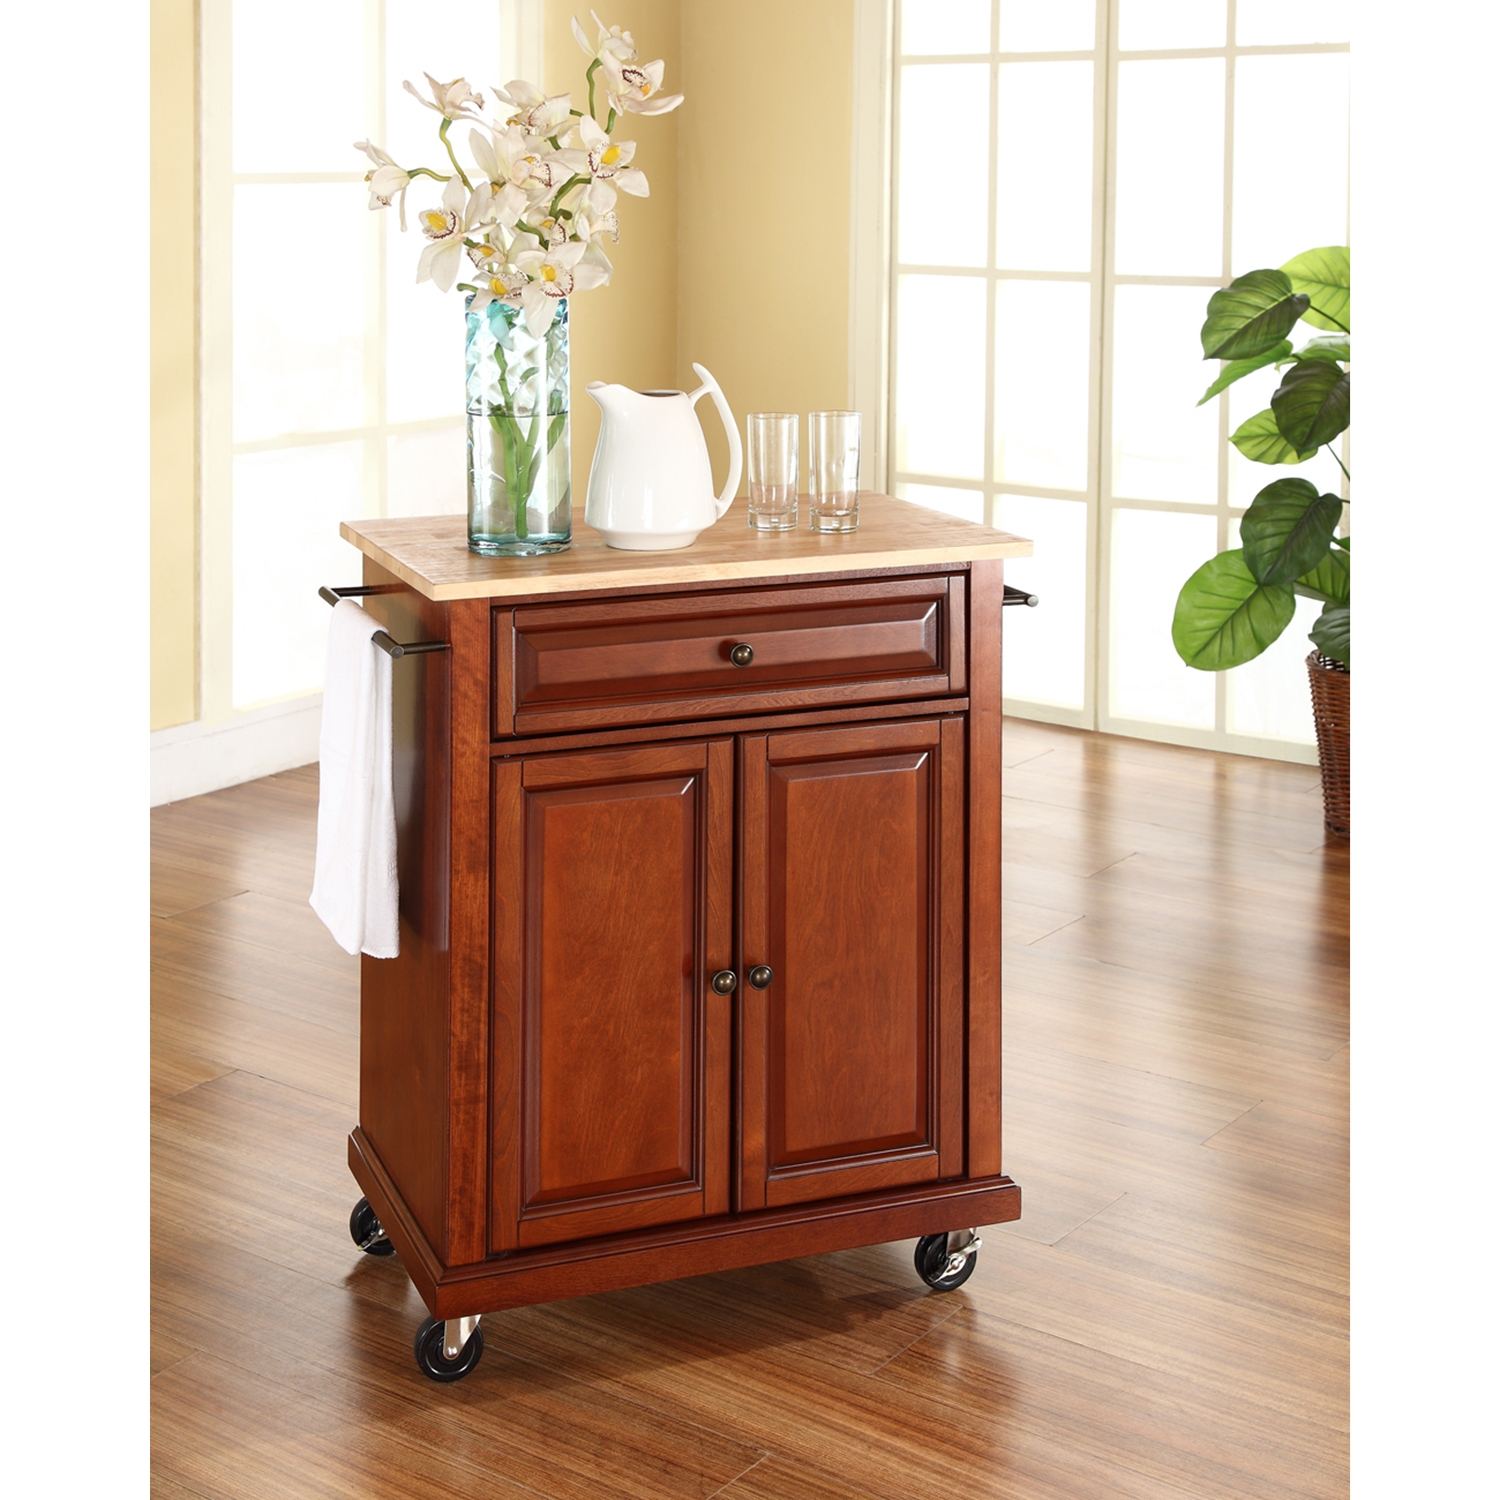 Natural Wood Top Portable Kitchen Cart/Island - Classic Cherry - CROS-KF30021ECH